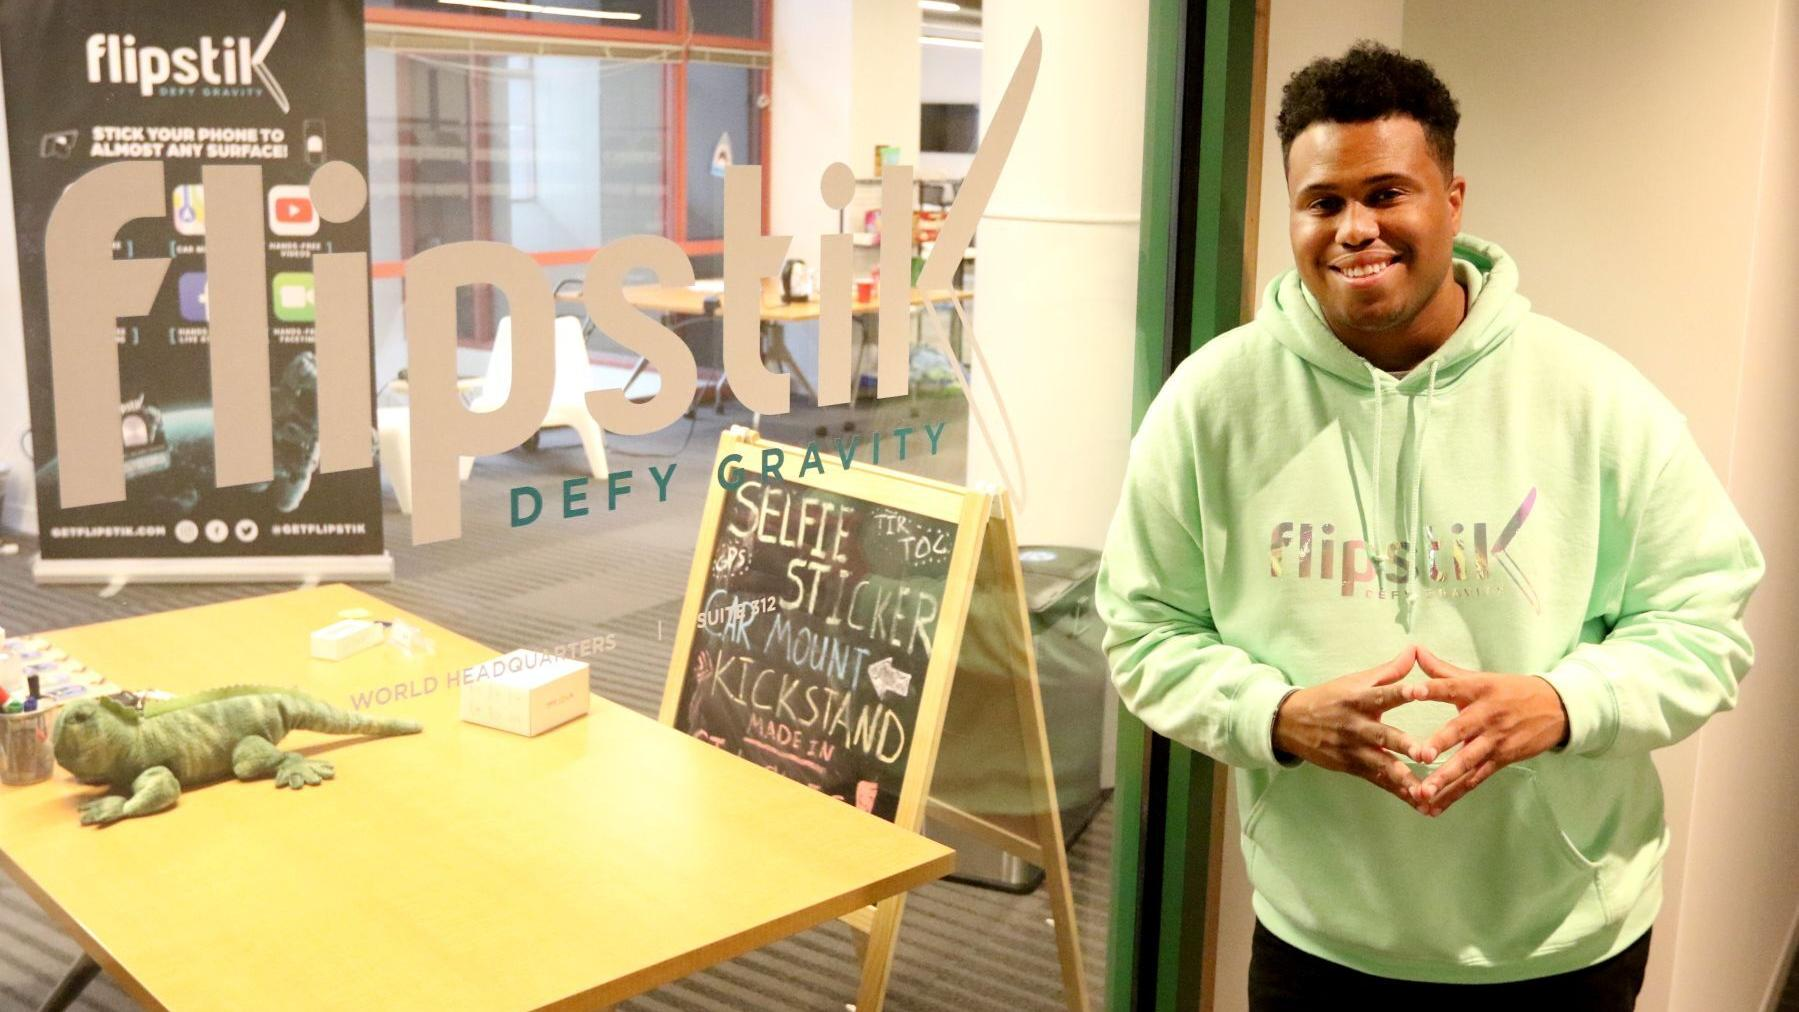 Made in St. Louis: His cellphone accessory landed him on 'Shark Tank'